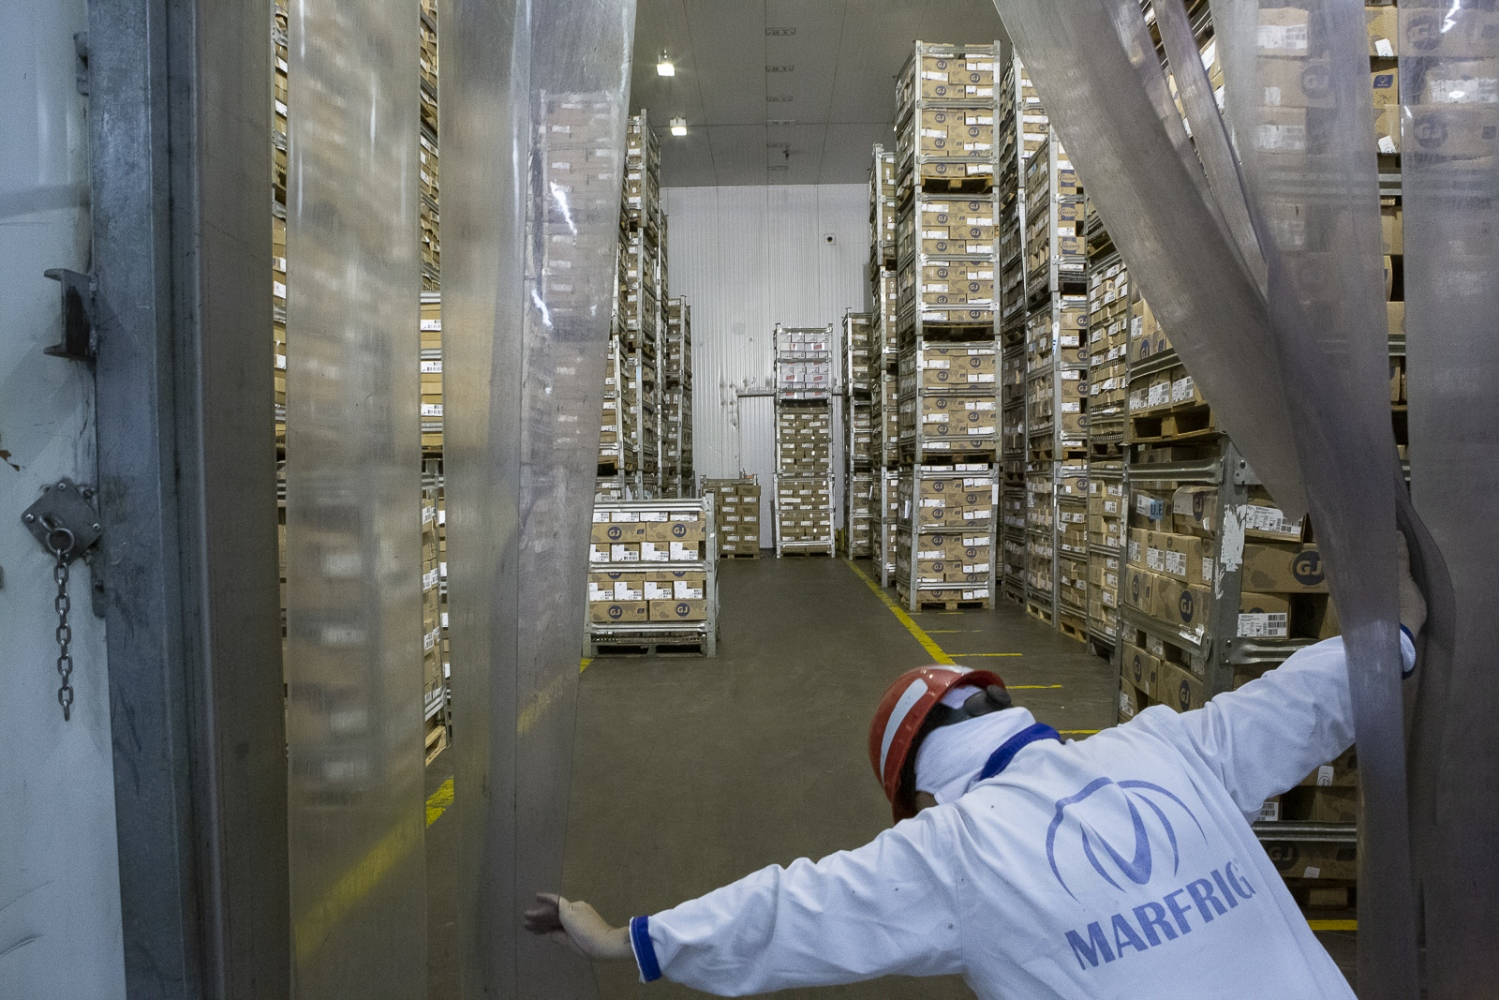 One of the ten room full of freezed meat boxes for exportation.  Marfrig in one of the biggest slaughterhouses of Brazil and the 3rd one of the world. Bataguaçu, Brazil, 2015